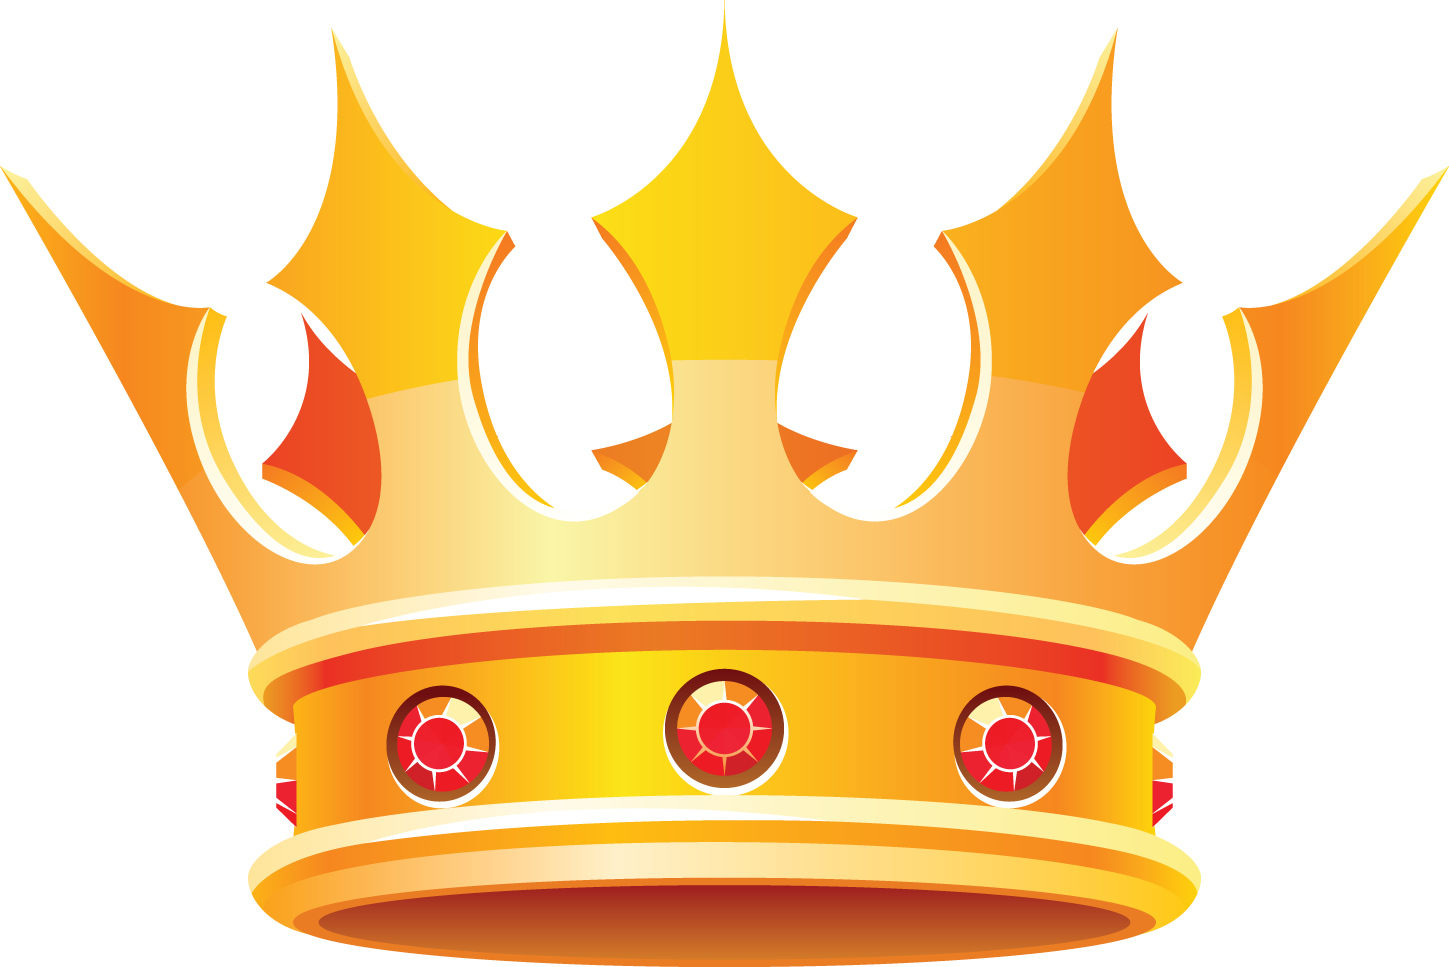 Free clipart of crown svg download King crown png clipart - ClipartFest svg download